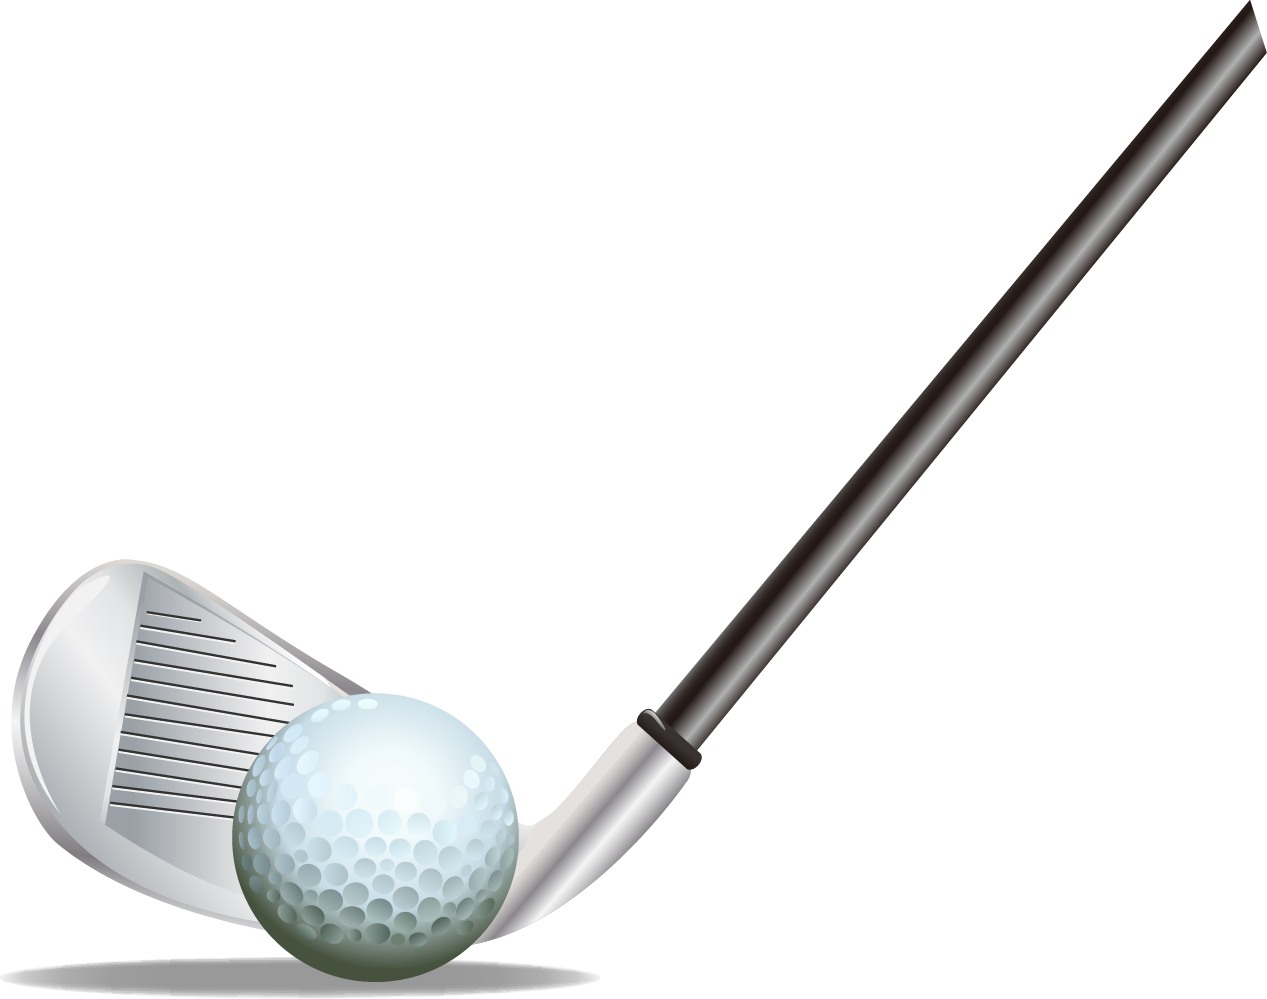 Golf club Golf ball Golf course Clip art.